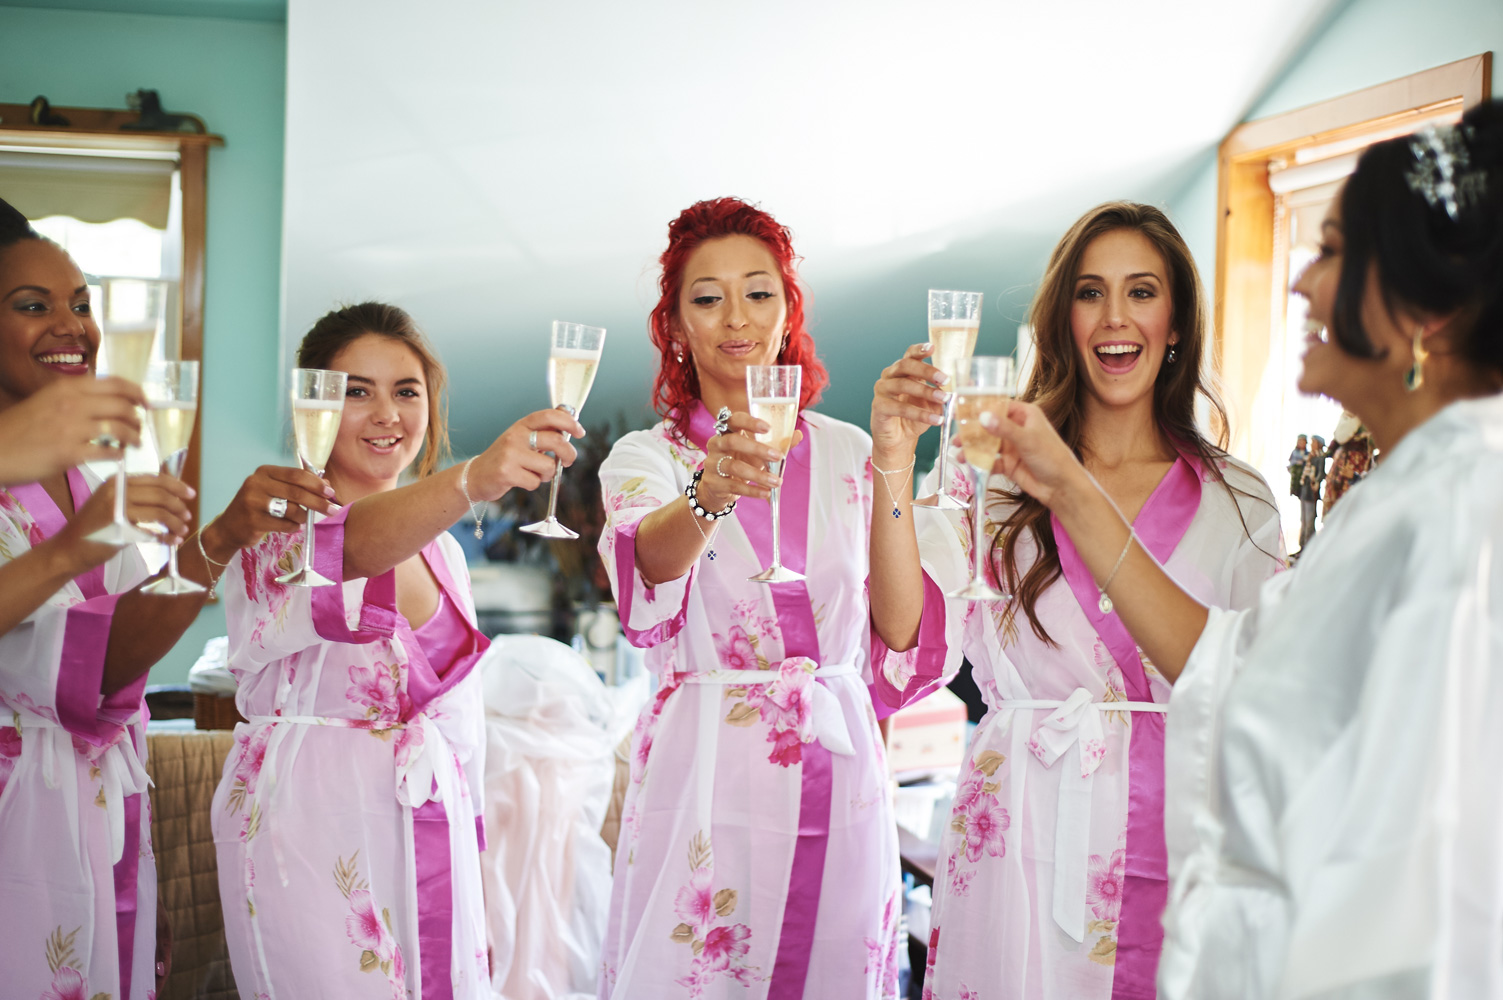 bridal-party-sharing-a-glass-of-champagne-together.jpg